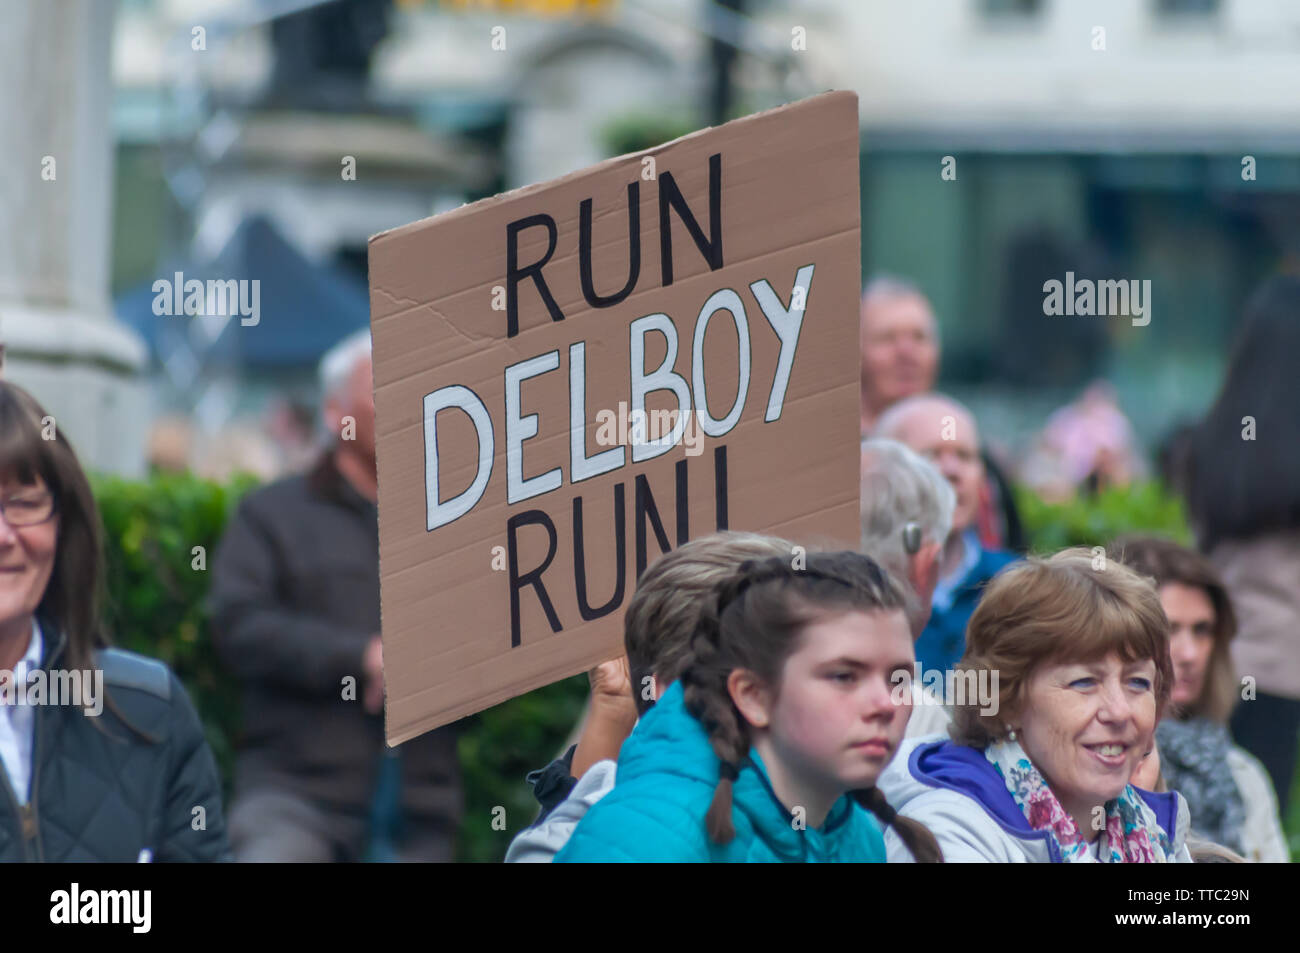 Glasgow, Scotland, UK. 16th June, 2019. Spectators in George Square holding a placard saying Run Delboy Run at the Men's 10K Run which has been an annual event since 2004. Thousands of runners take to the streets of the city to get fit, fundraise, and raise awareness of men's health issues. The run coincides with Fathers Day and starts at the Riverside Museum and  finishes at George Square. Credit: Skully/Alamy Live News - Stock Image